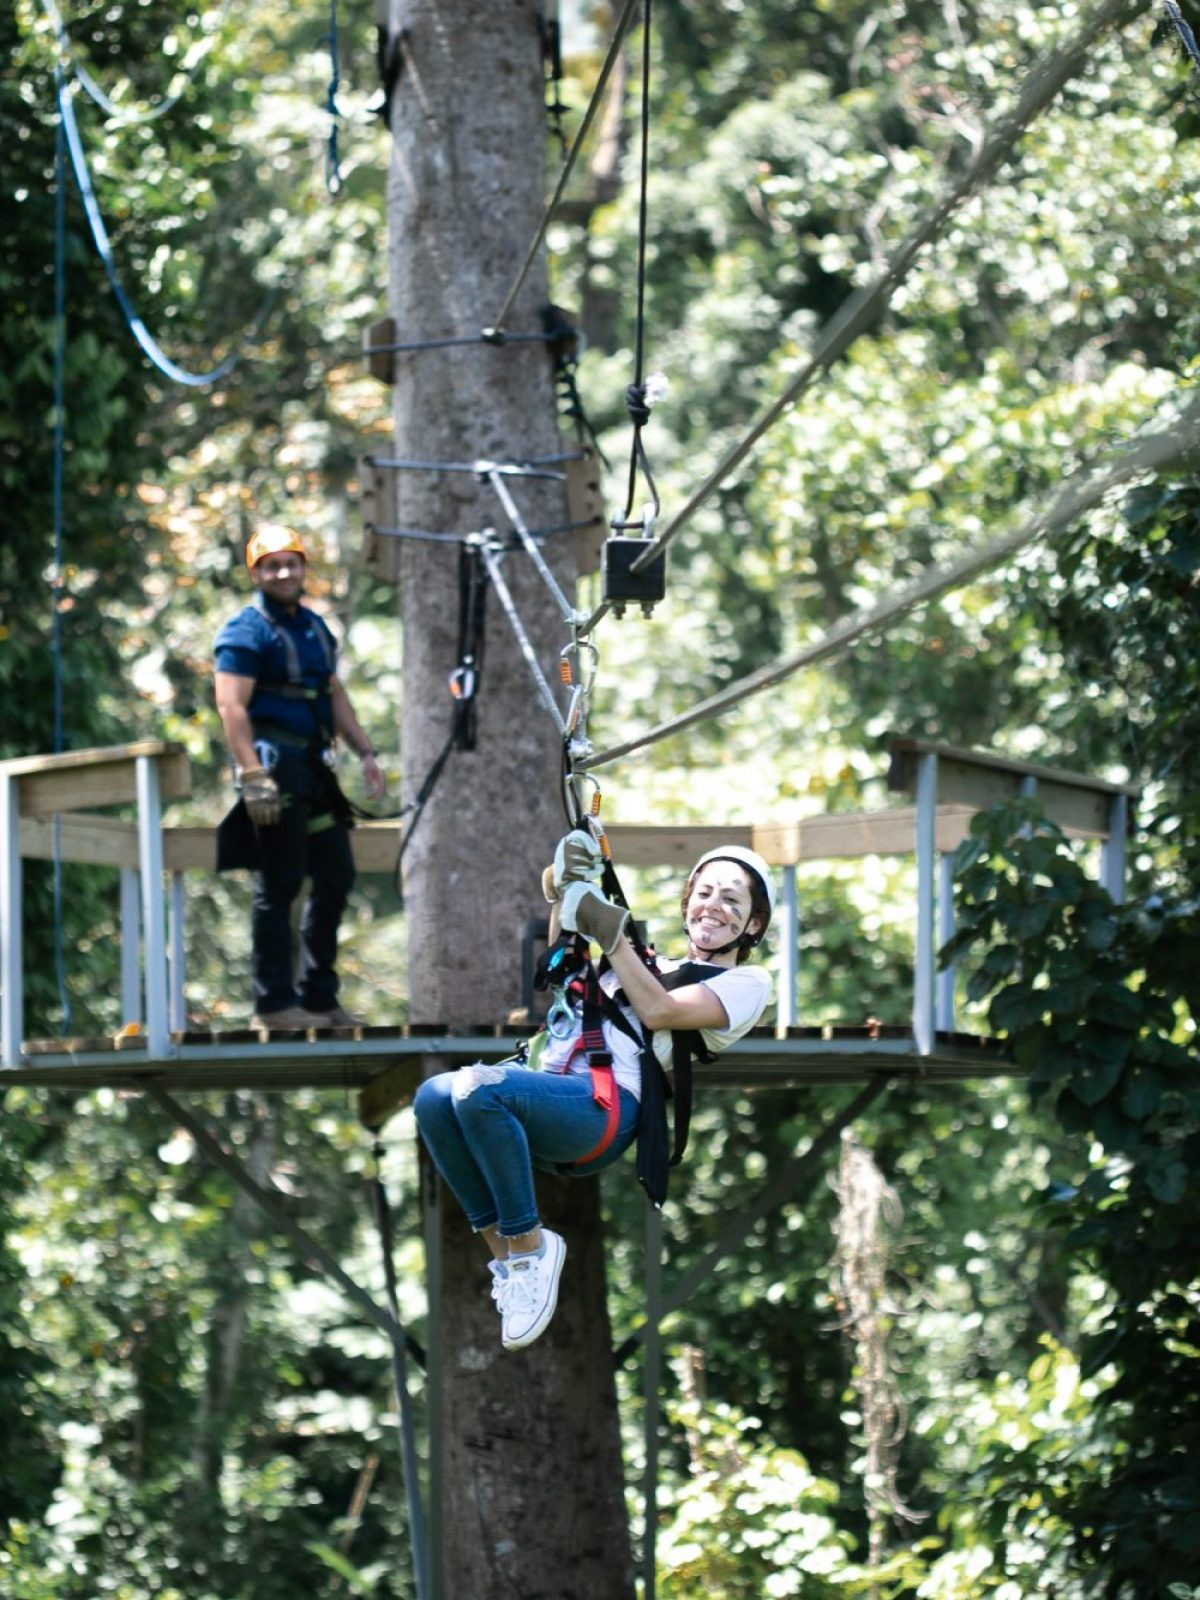 ziplining in el yunque, ziplining in puerto rico, ziplining in the rainforest in puerto rico, junglequi zipline park reviews, what to do in puerto rico, adventurous things to do in puerto rico, best zipline puerto rico